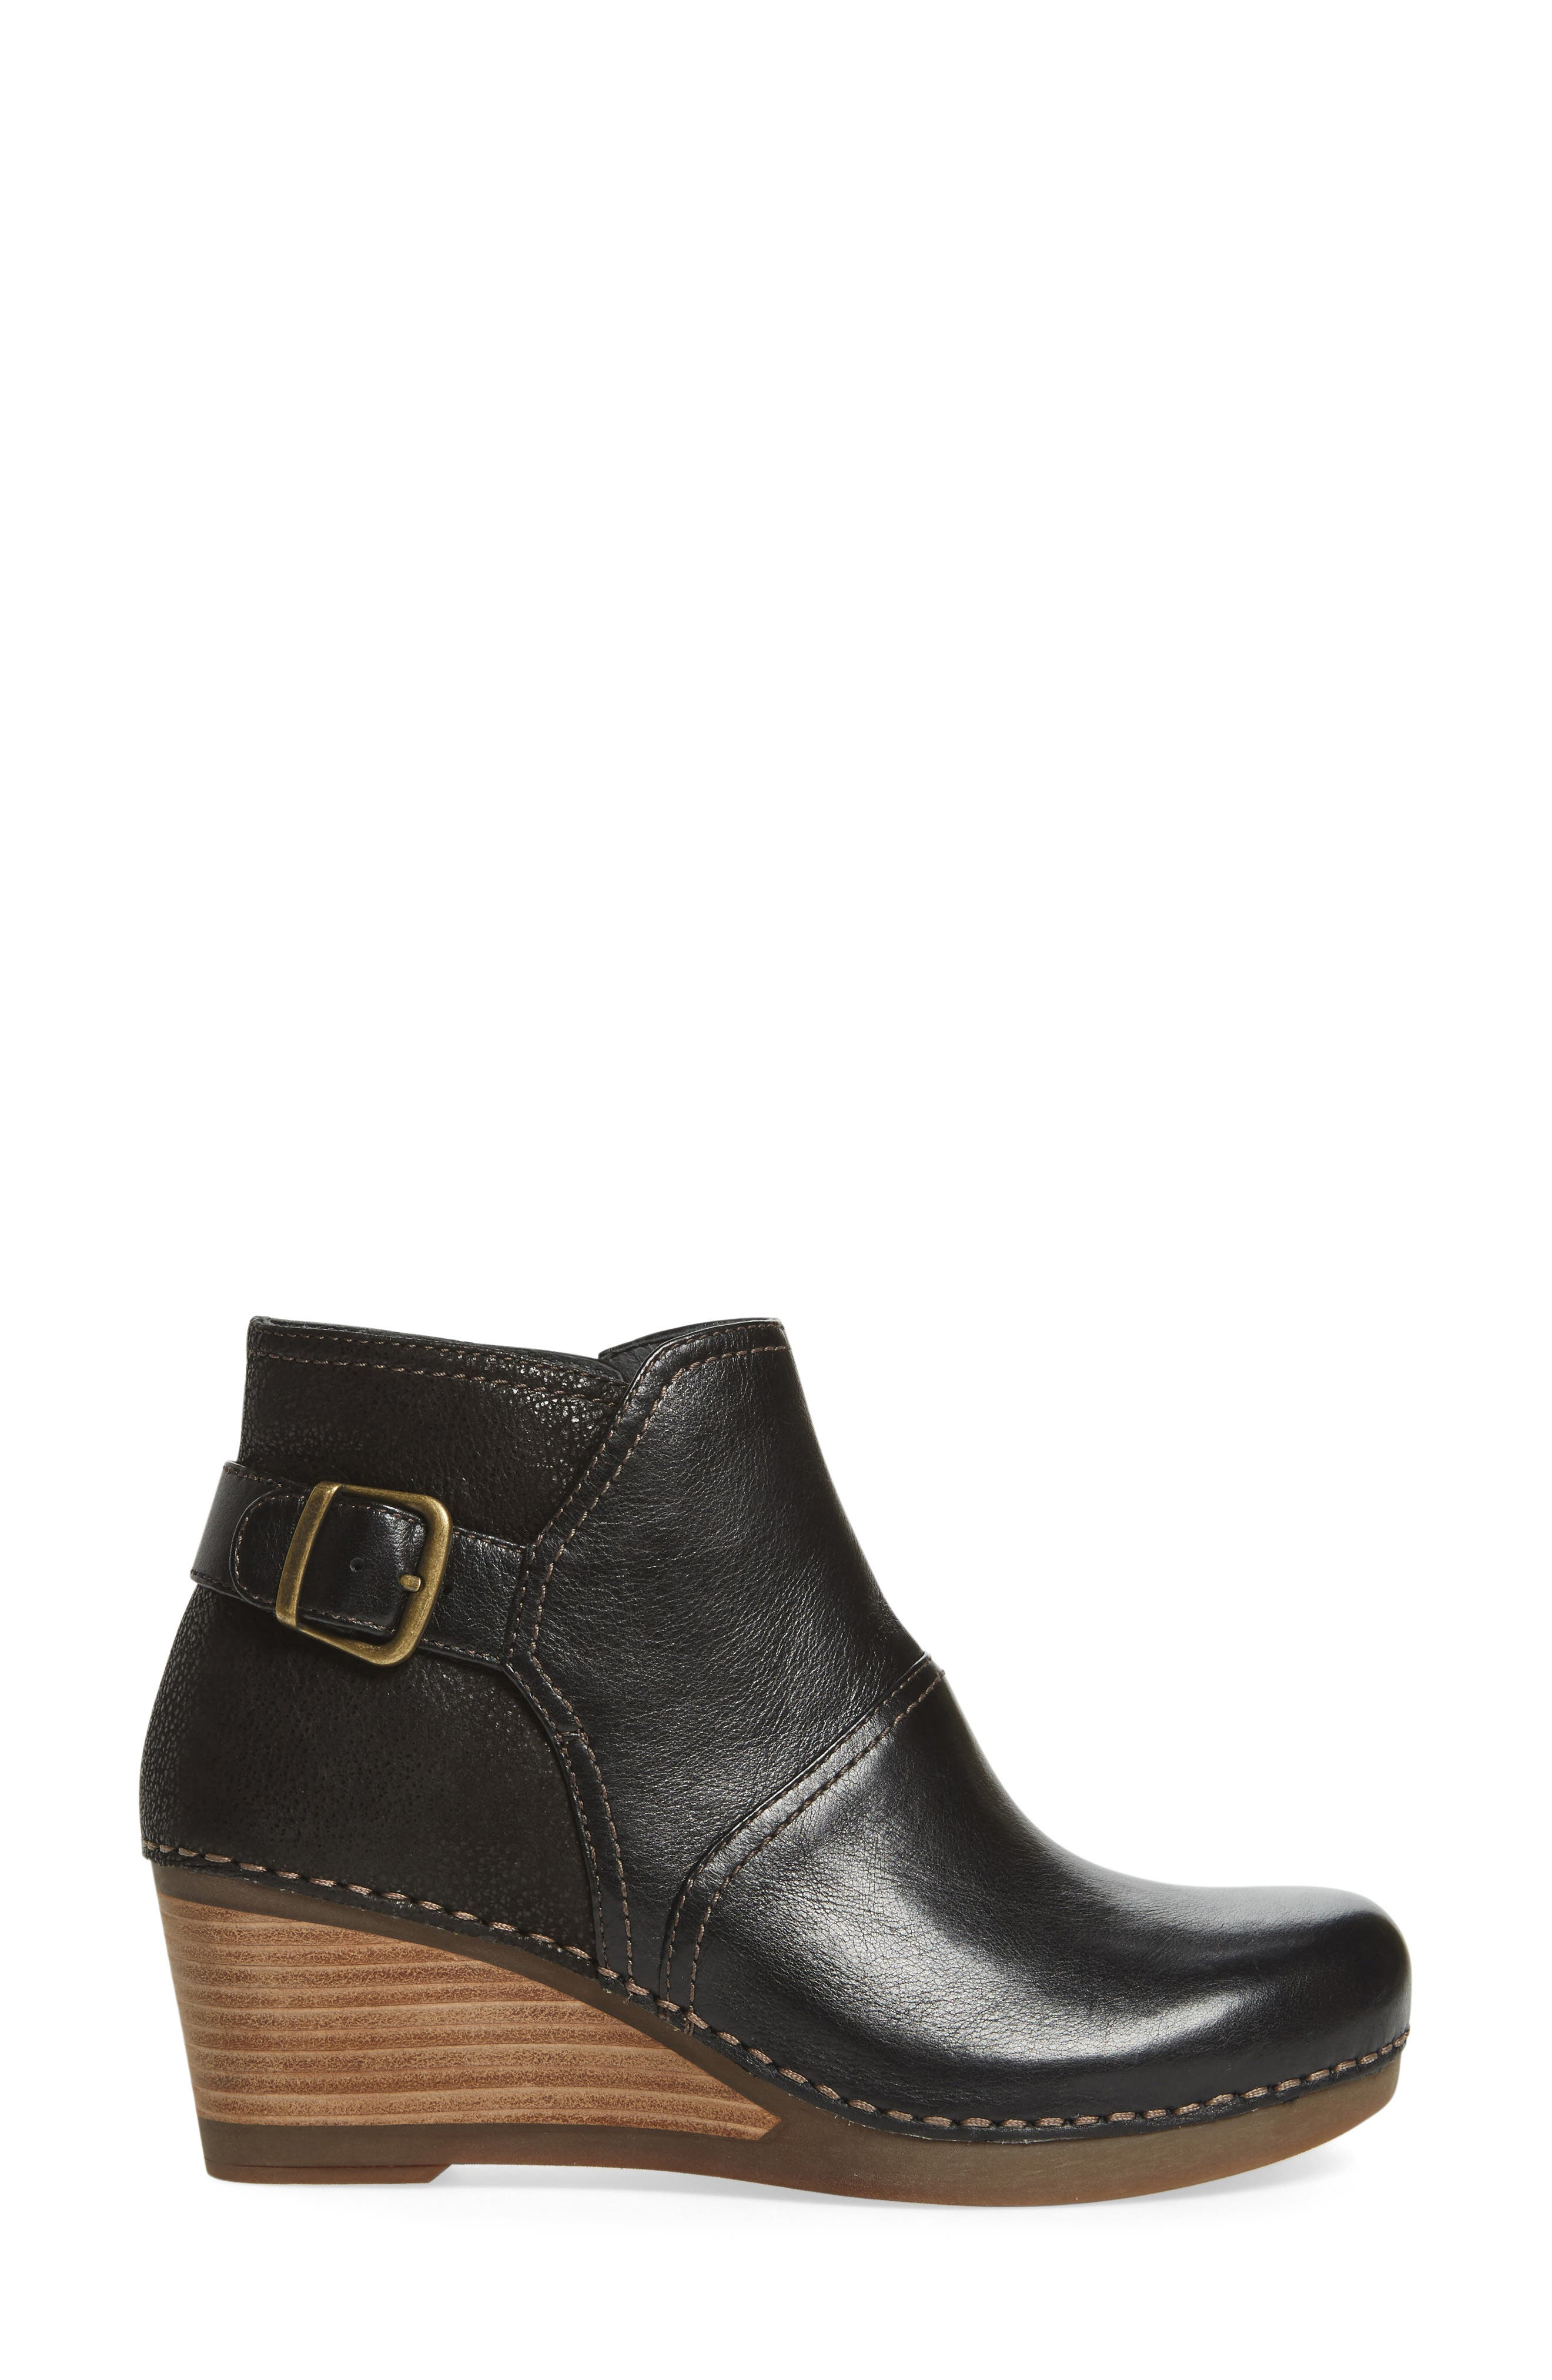 'Shirley' Wedge Bootie,                             Alternate thumbnail 12, color,